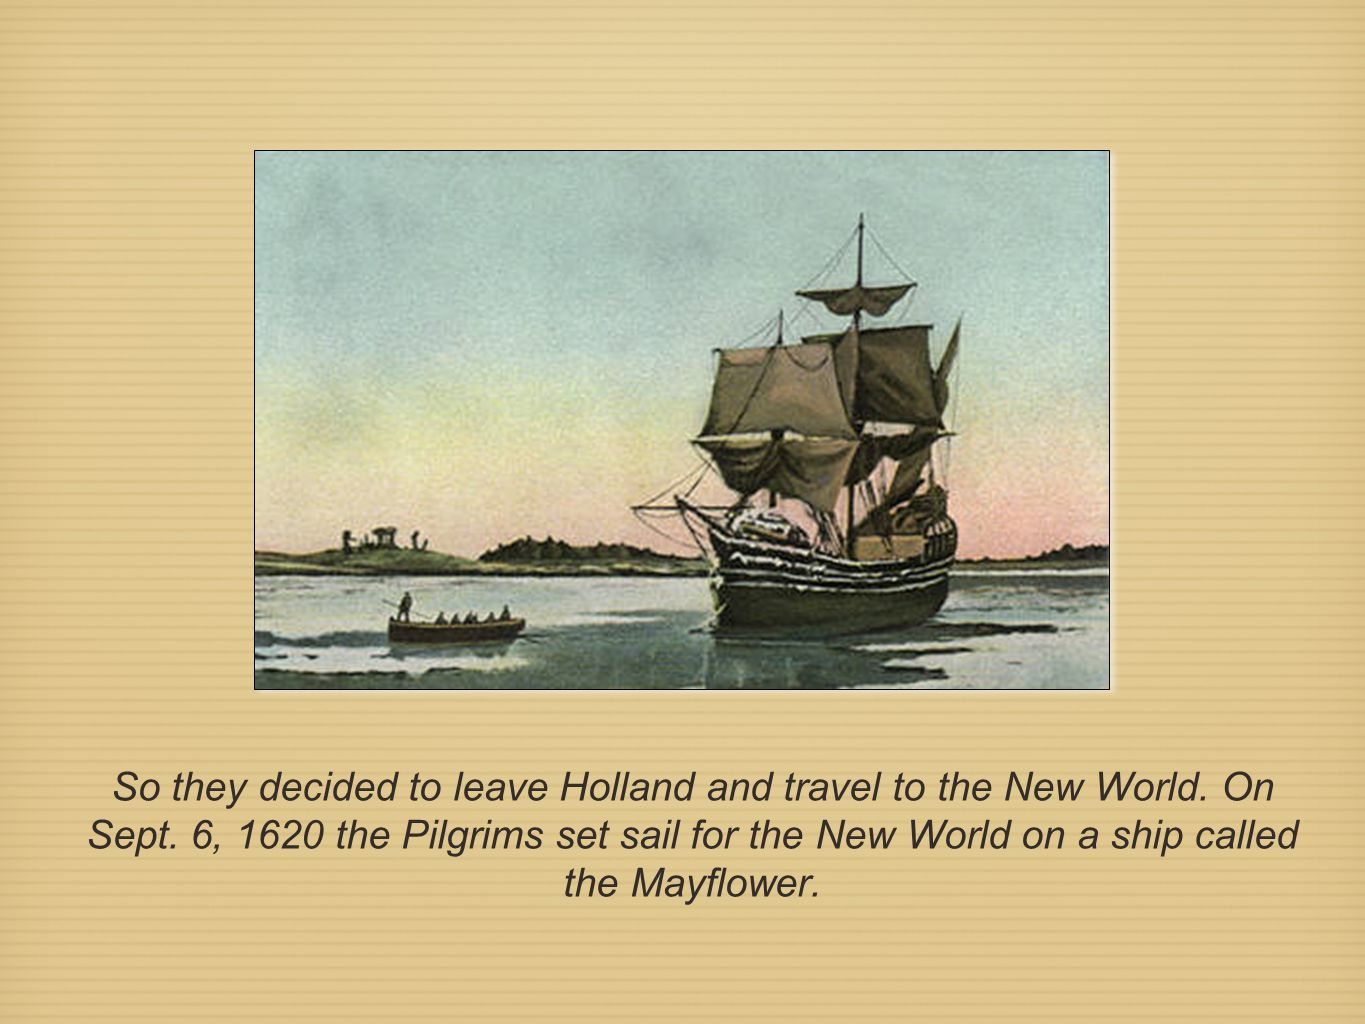 So they decided to leave Holland and travel to the New World. On Sept